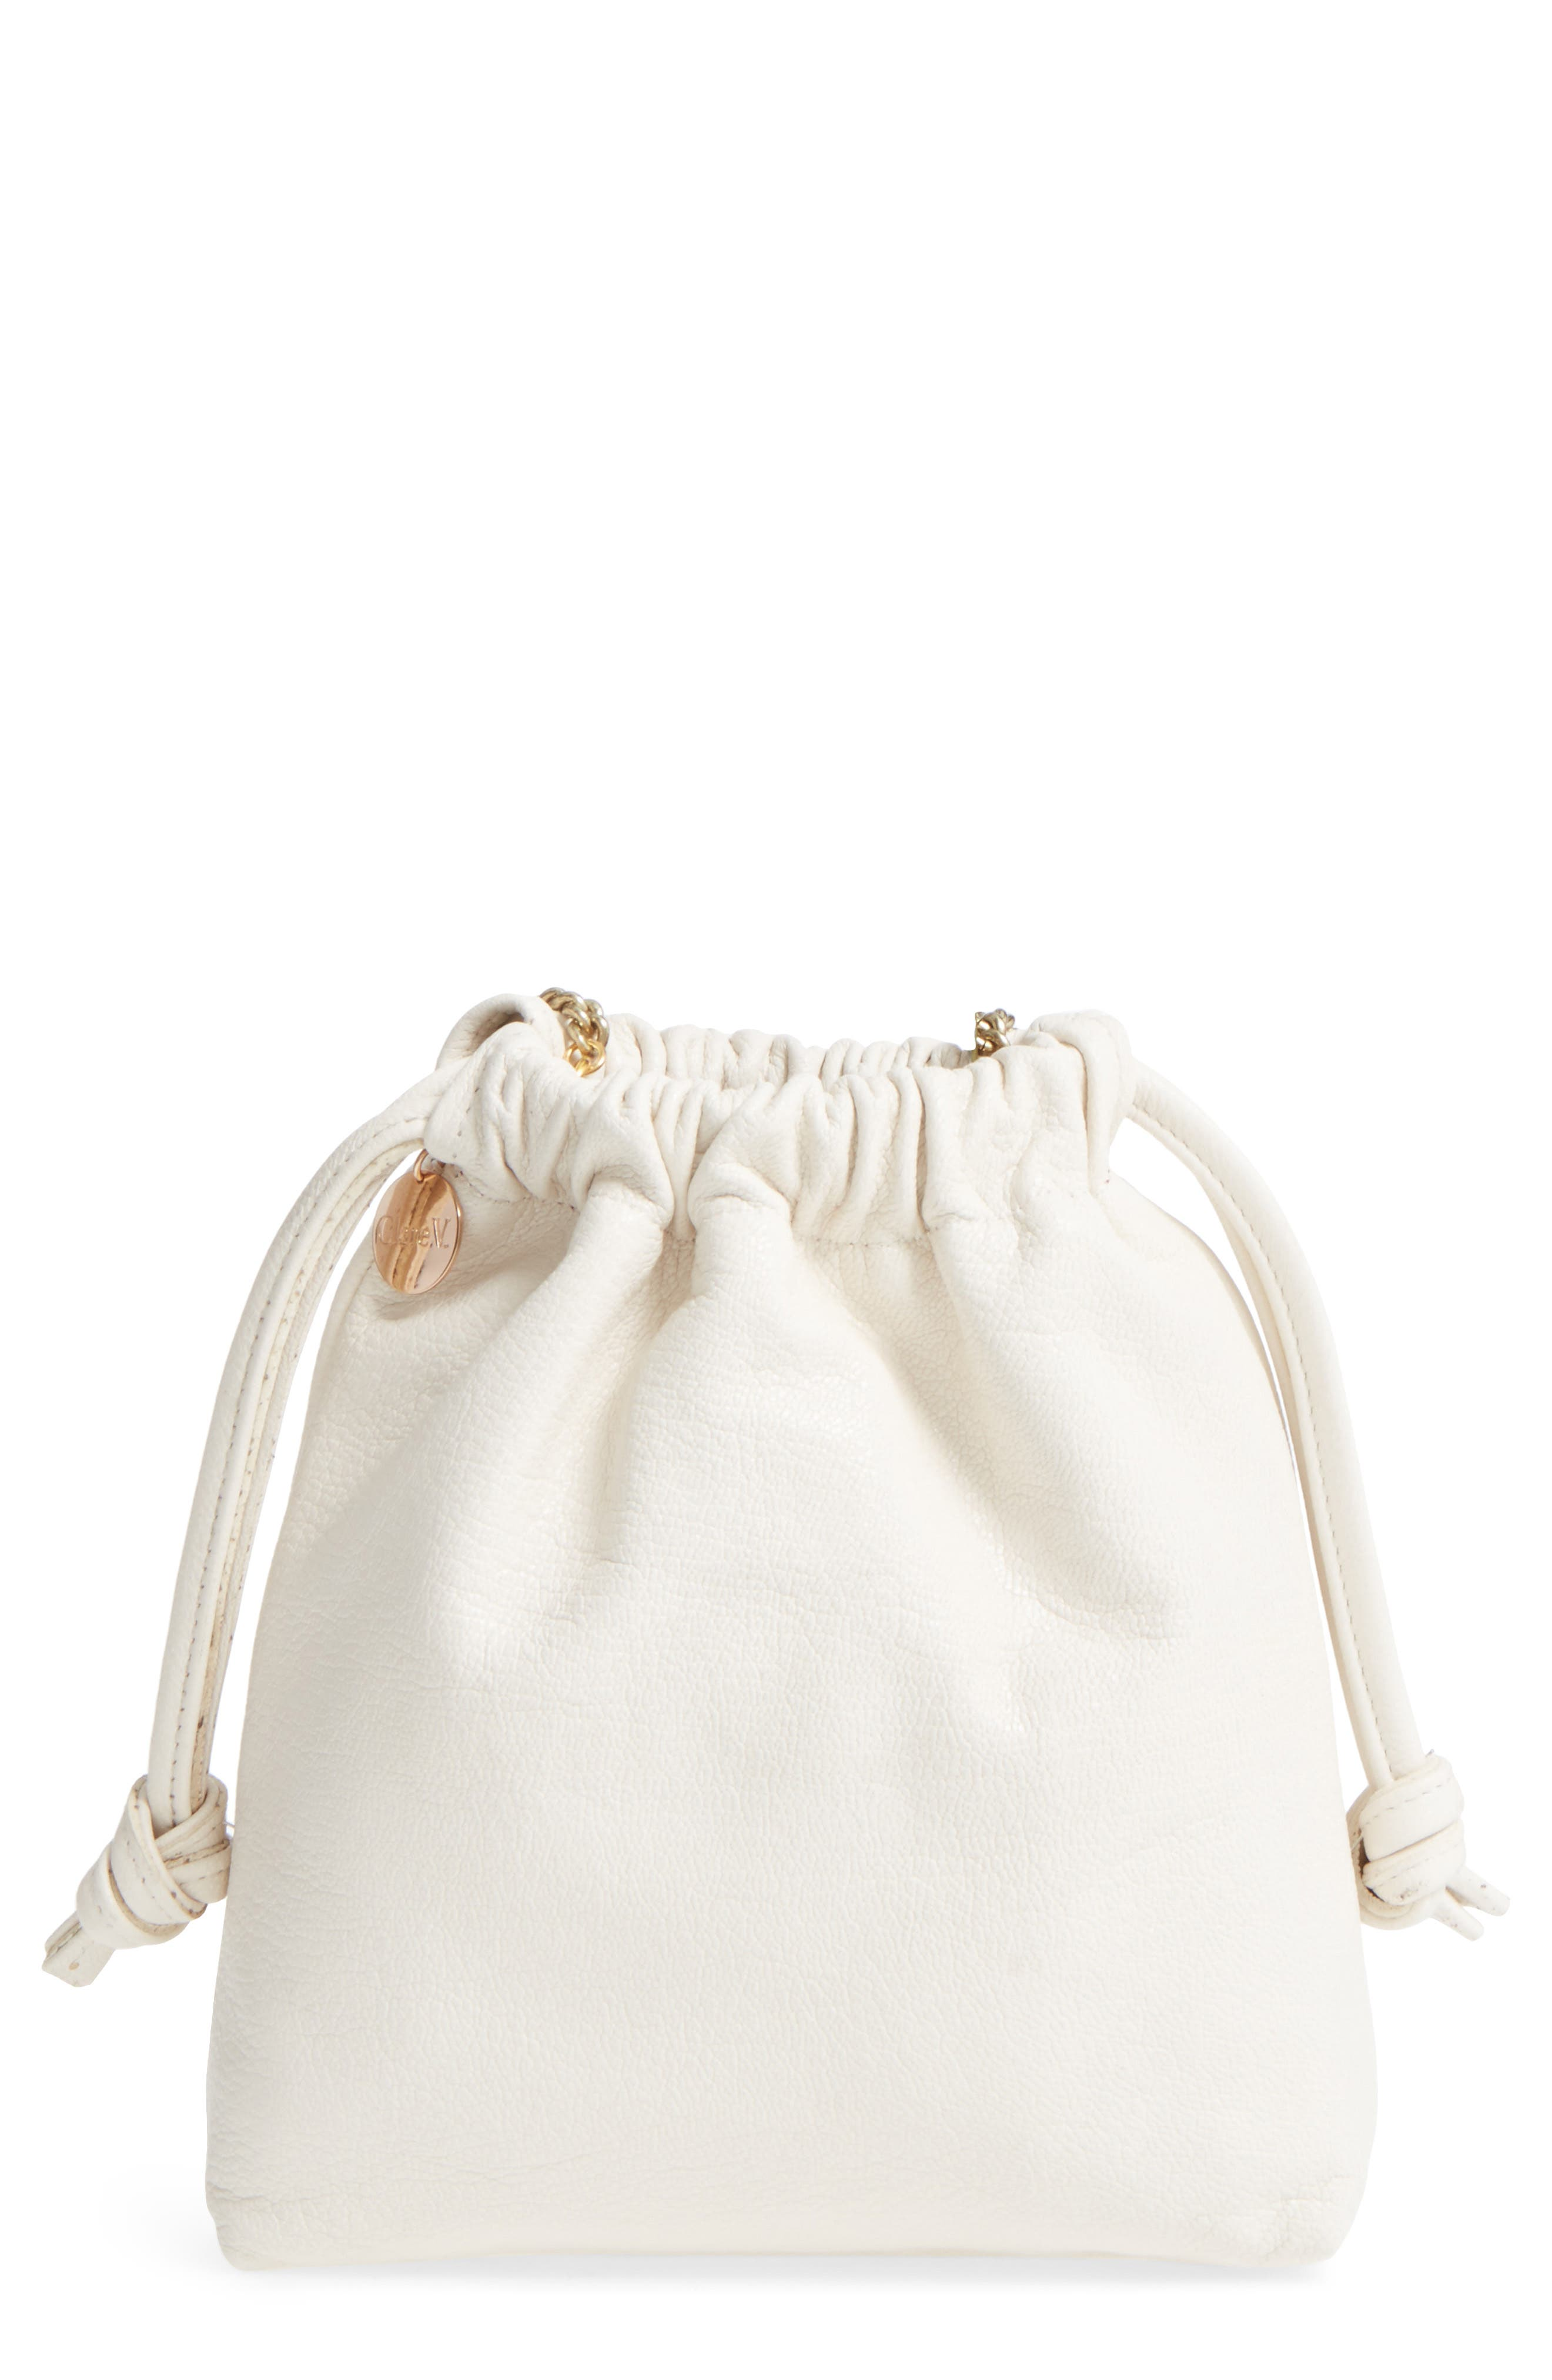 Leather Drawstring Wristlet Pouch,                             Main thumbnail 1, color,                             Cream Goat